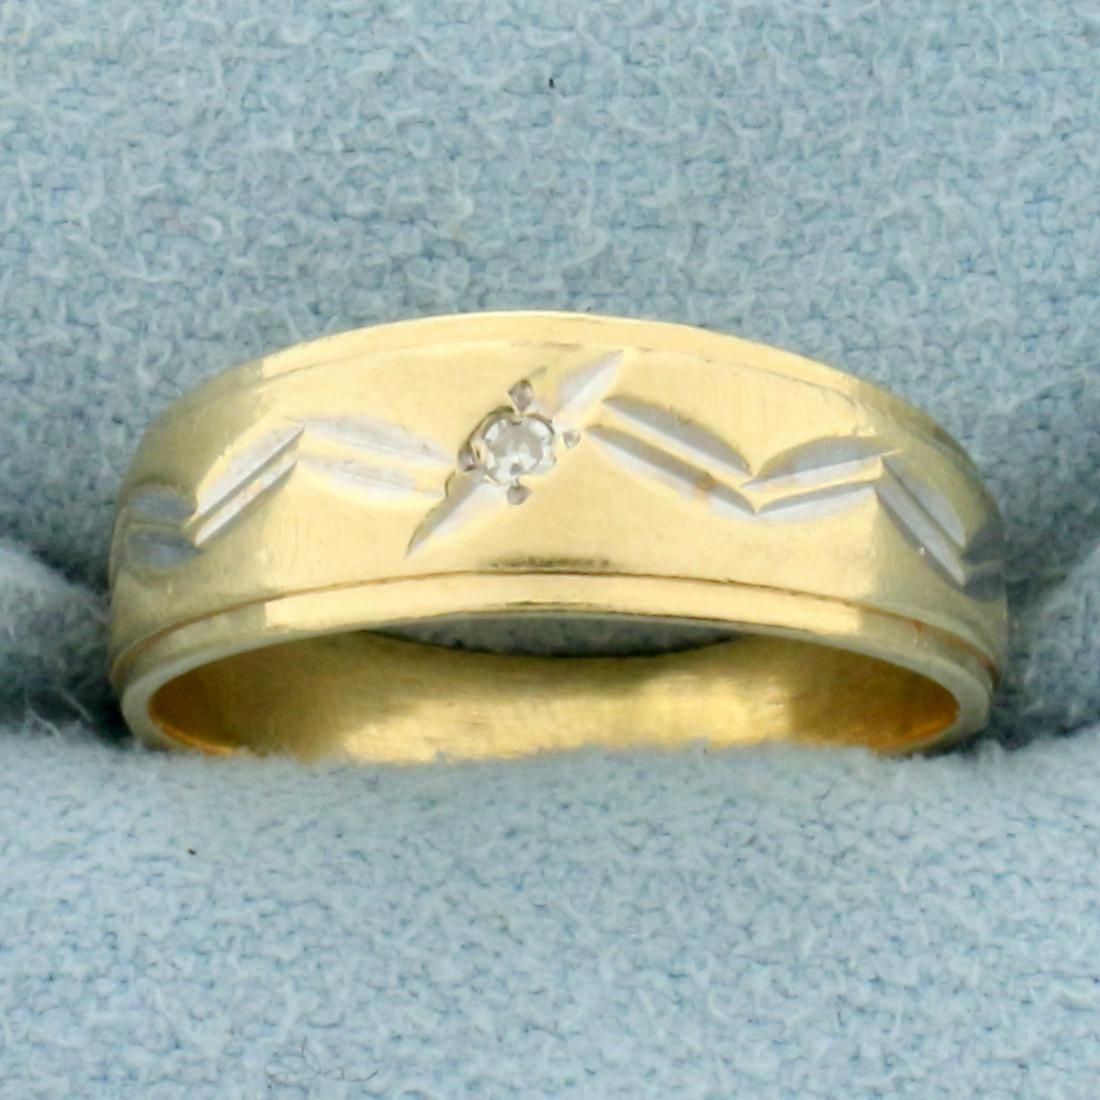 Vintage Two Tone Diamond Pinky Ring in 14K Yellow and